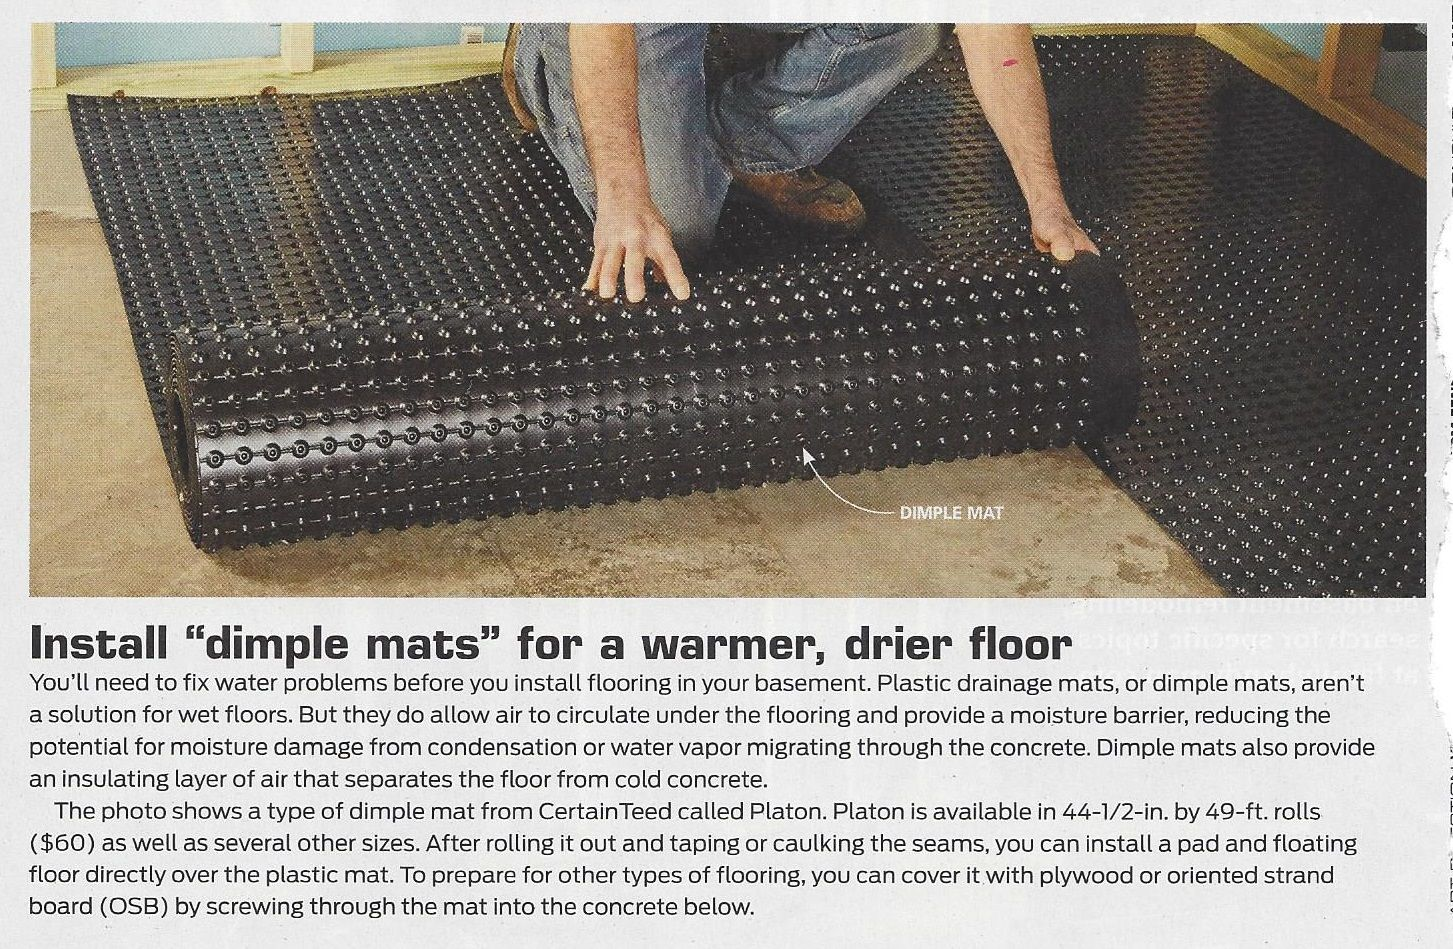 Dimple mats on subfloor instead of Dricore? Cheaper